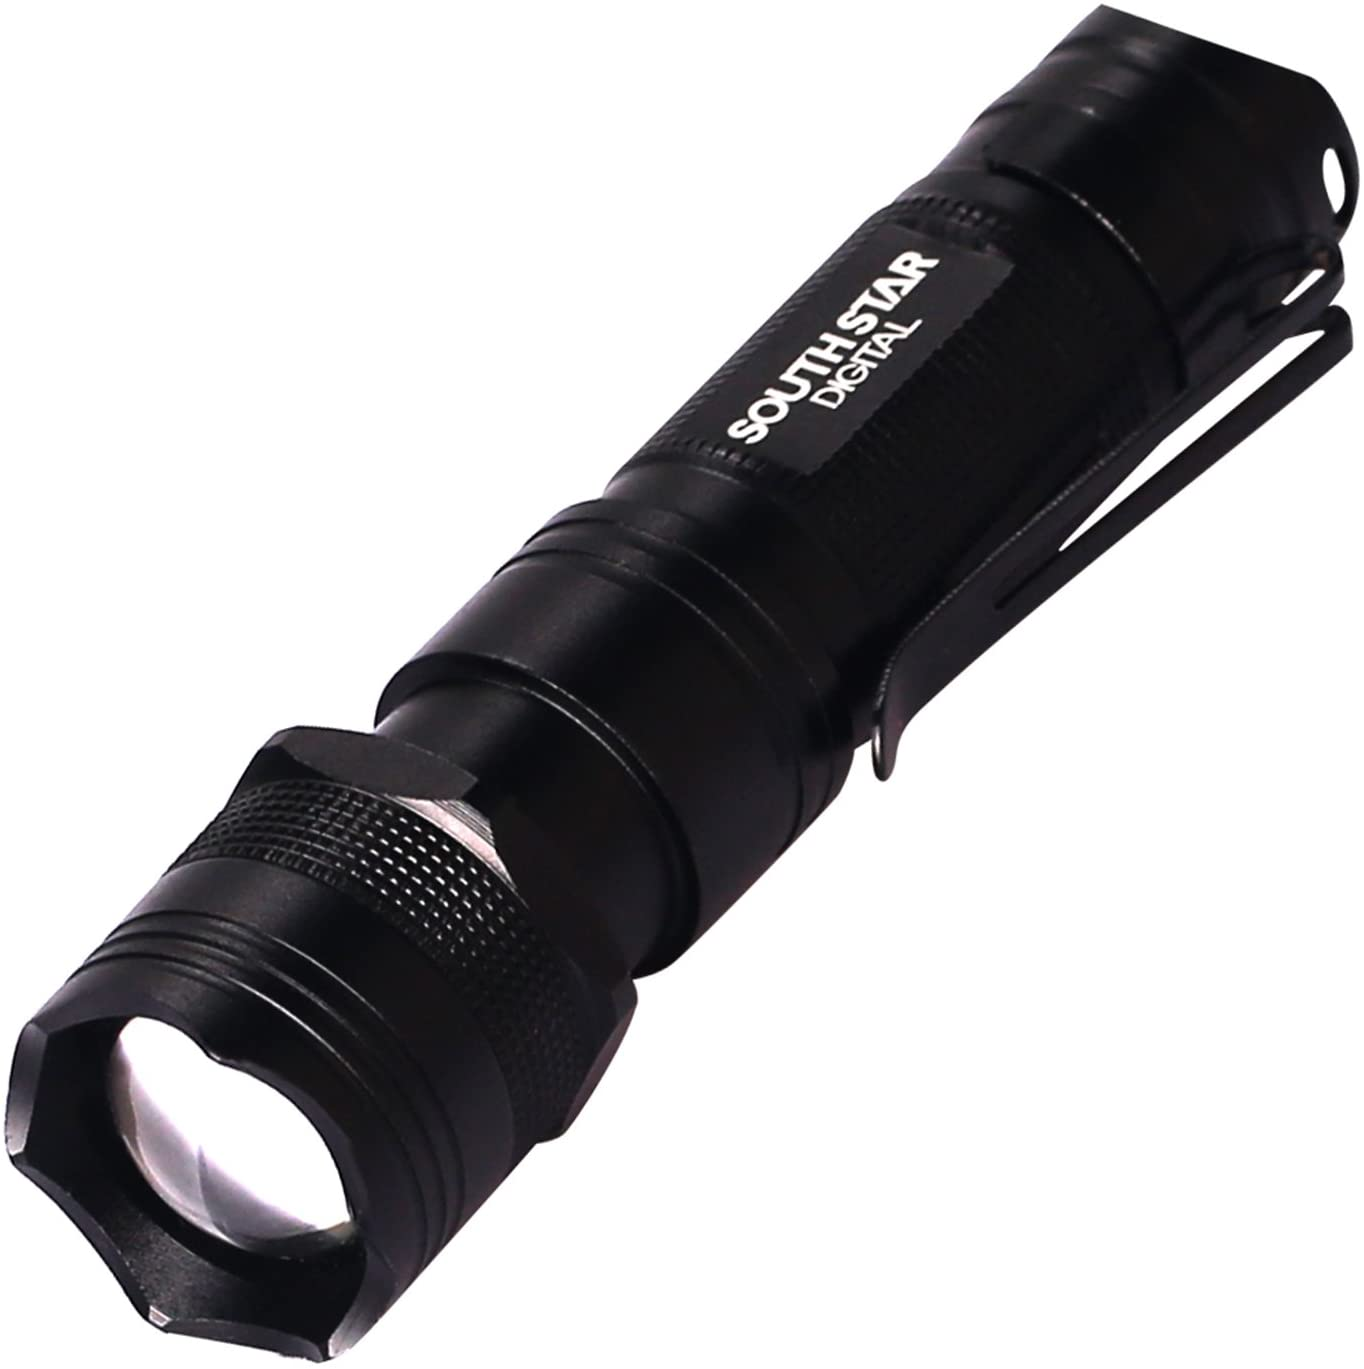 SOUTHSTARDIGITAL Tactical Flashlights LED Flashlight 3 Mode 130 Lumen EDC Adjustable Focus Zoom Light Lamp Powered by One AA Battery(NOT Include Battery)